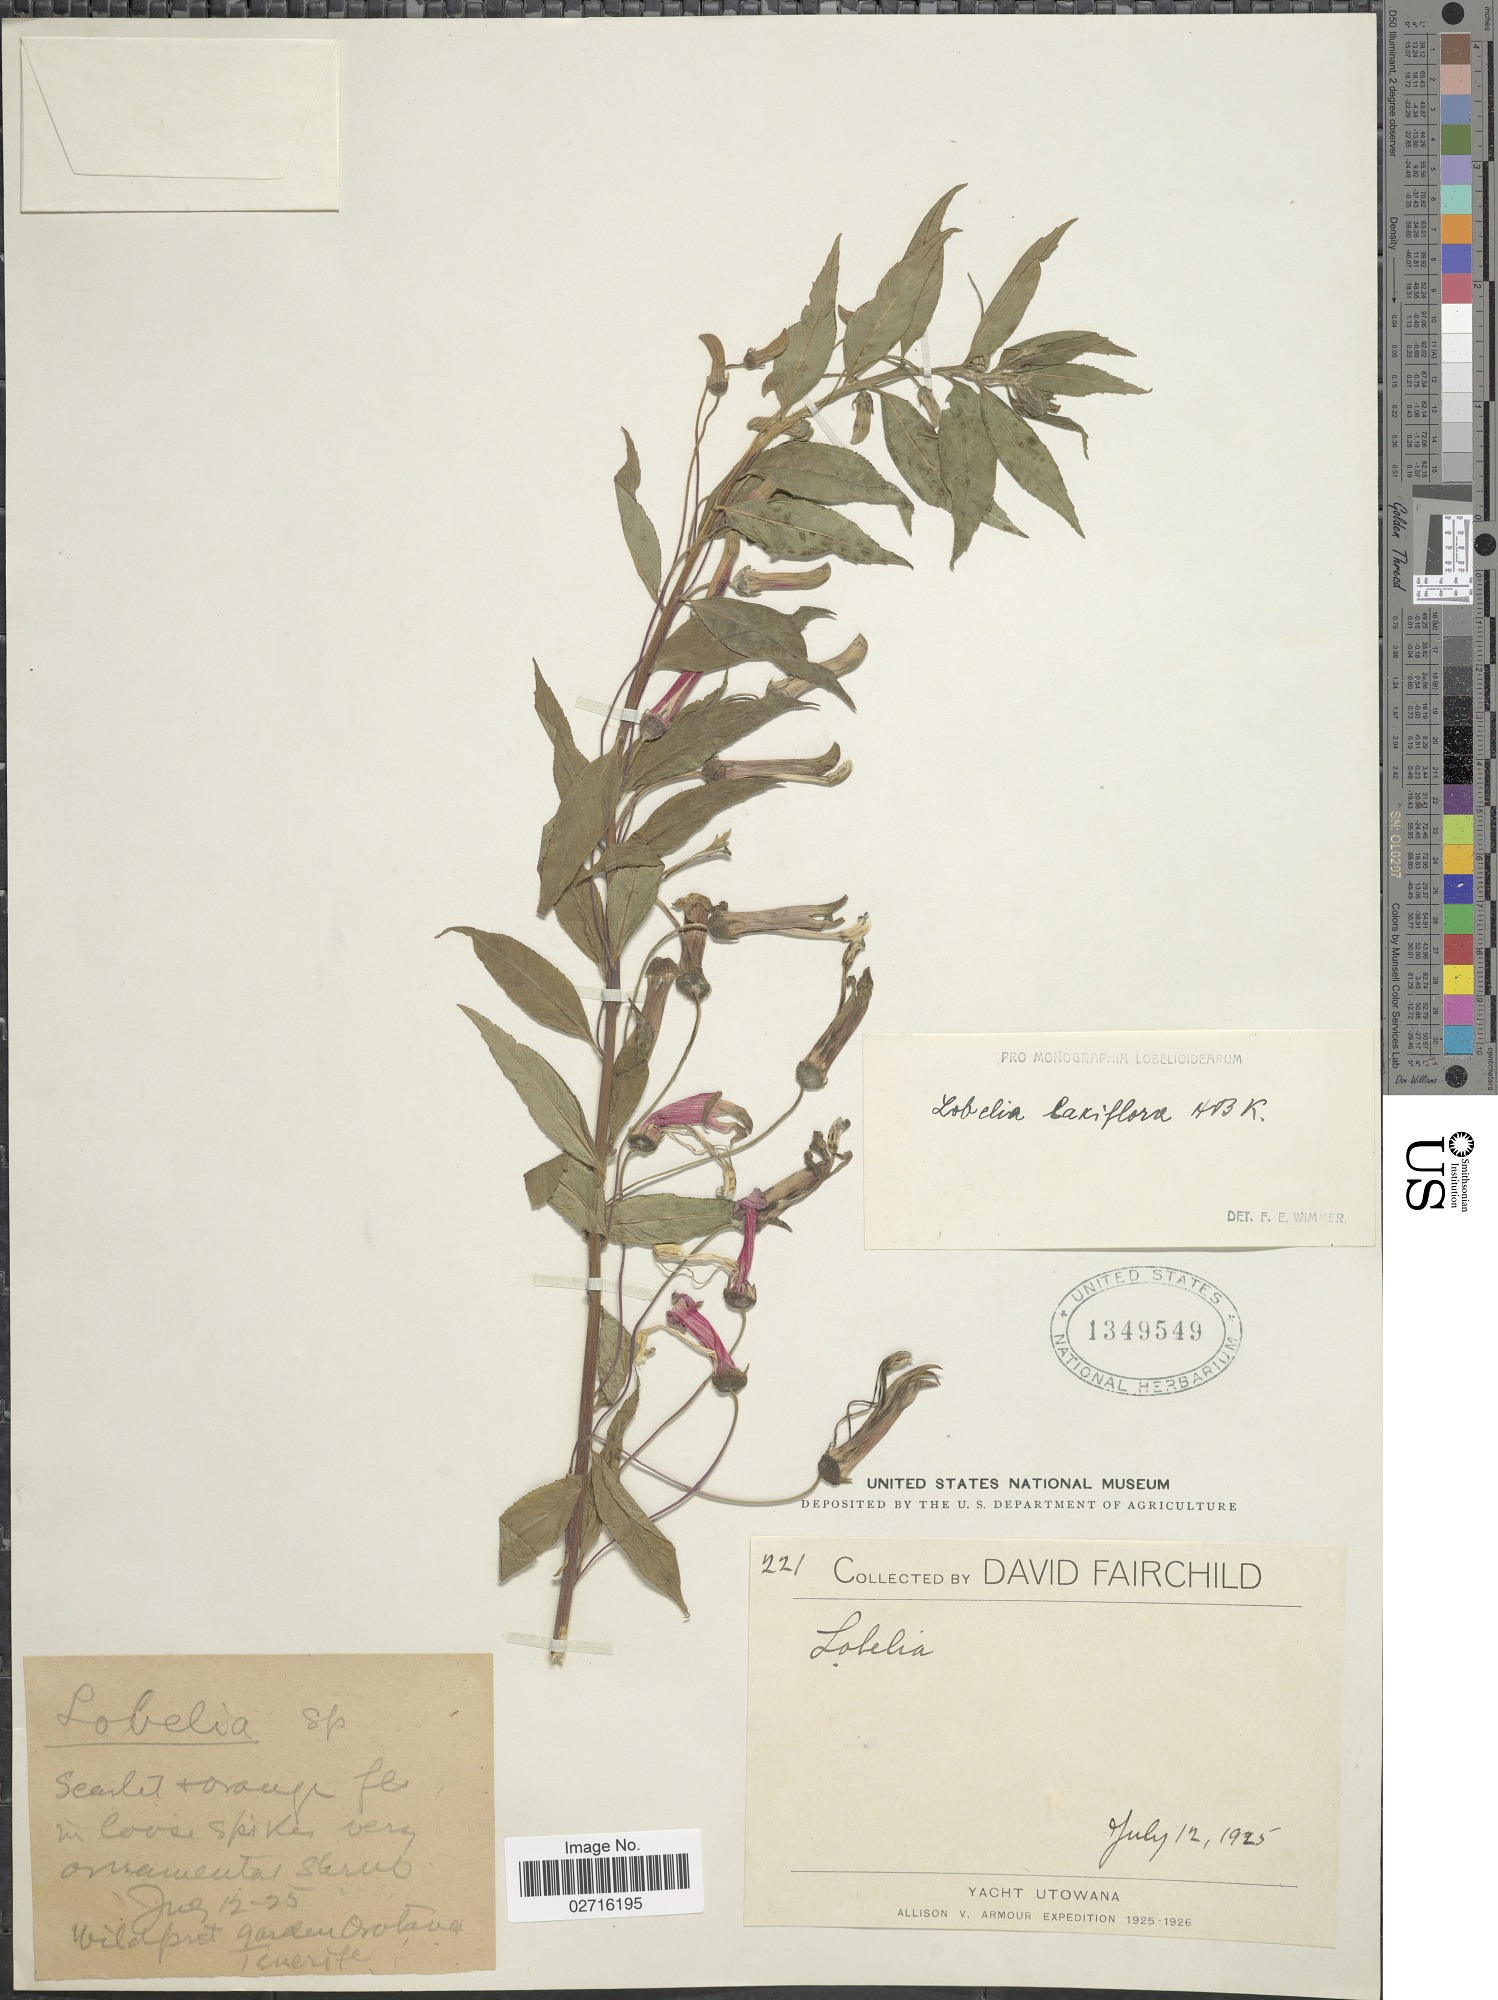 images for Lobelia laxiflora Kunth